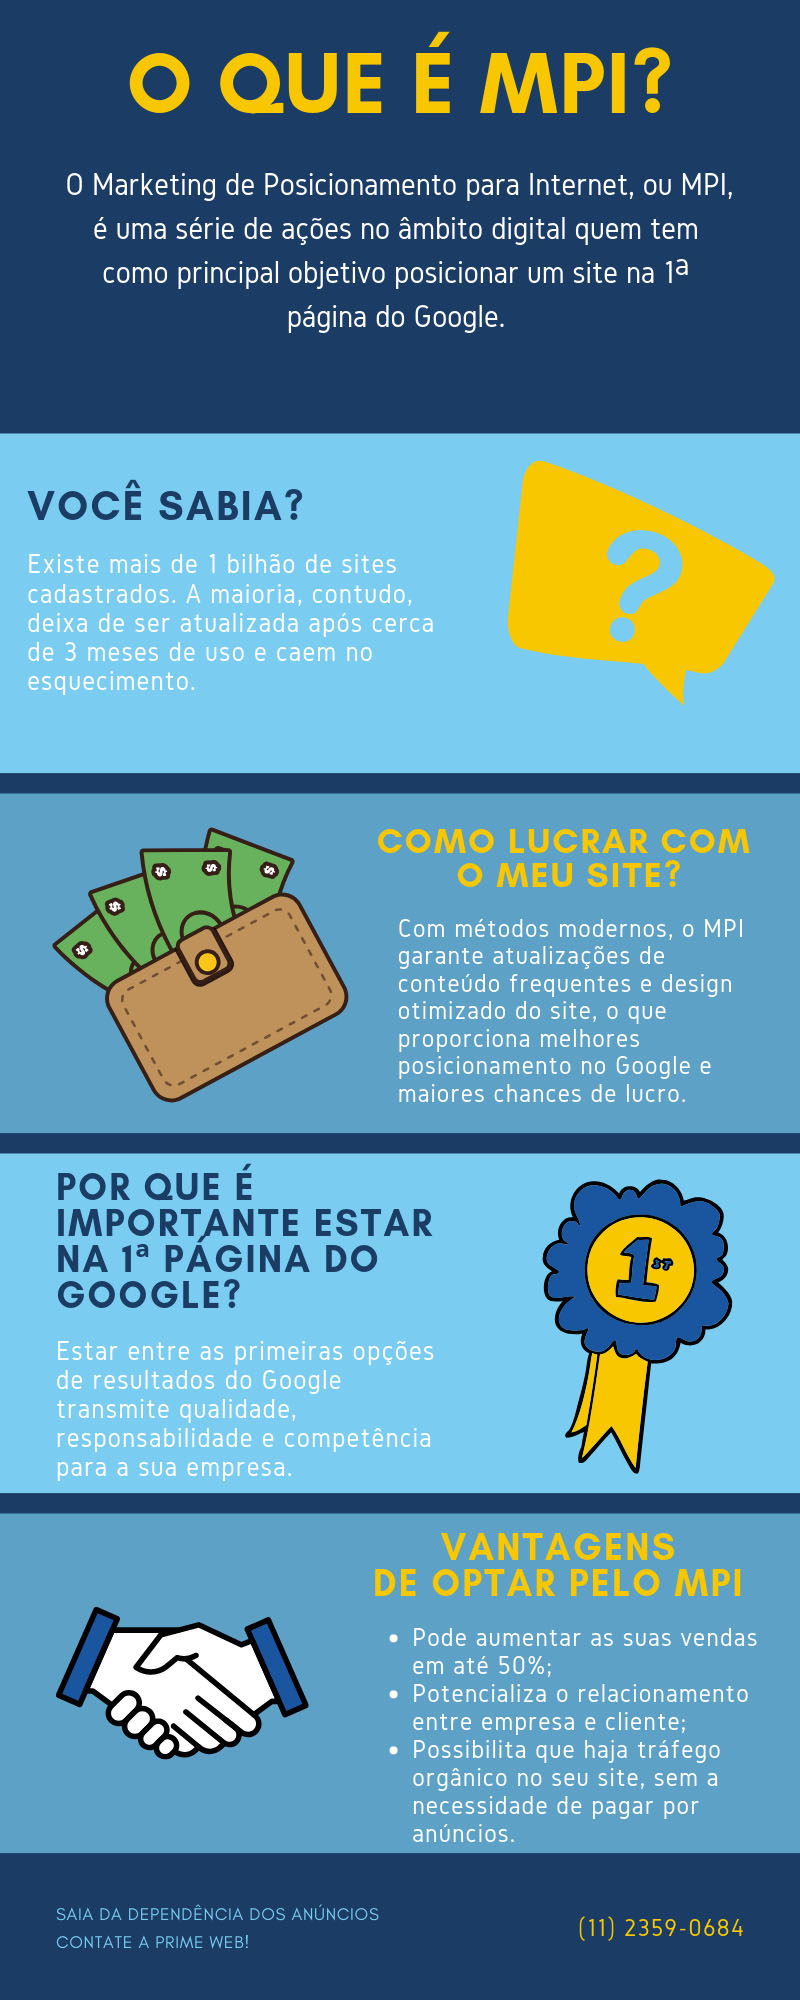 Infográfico: O que é MPI - Marketing de Posicionamento para Internet